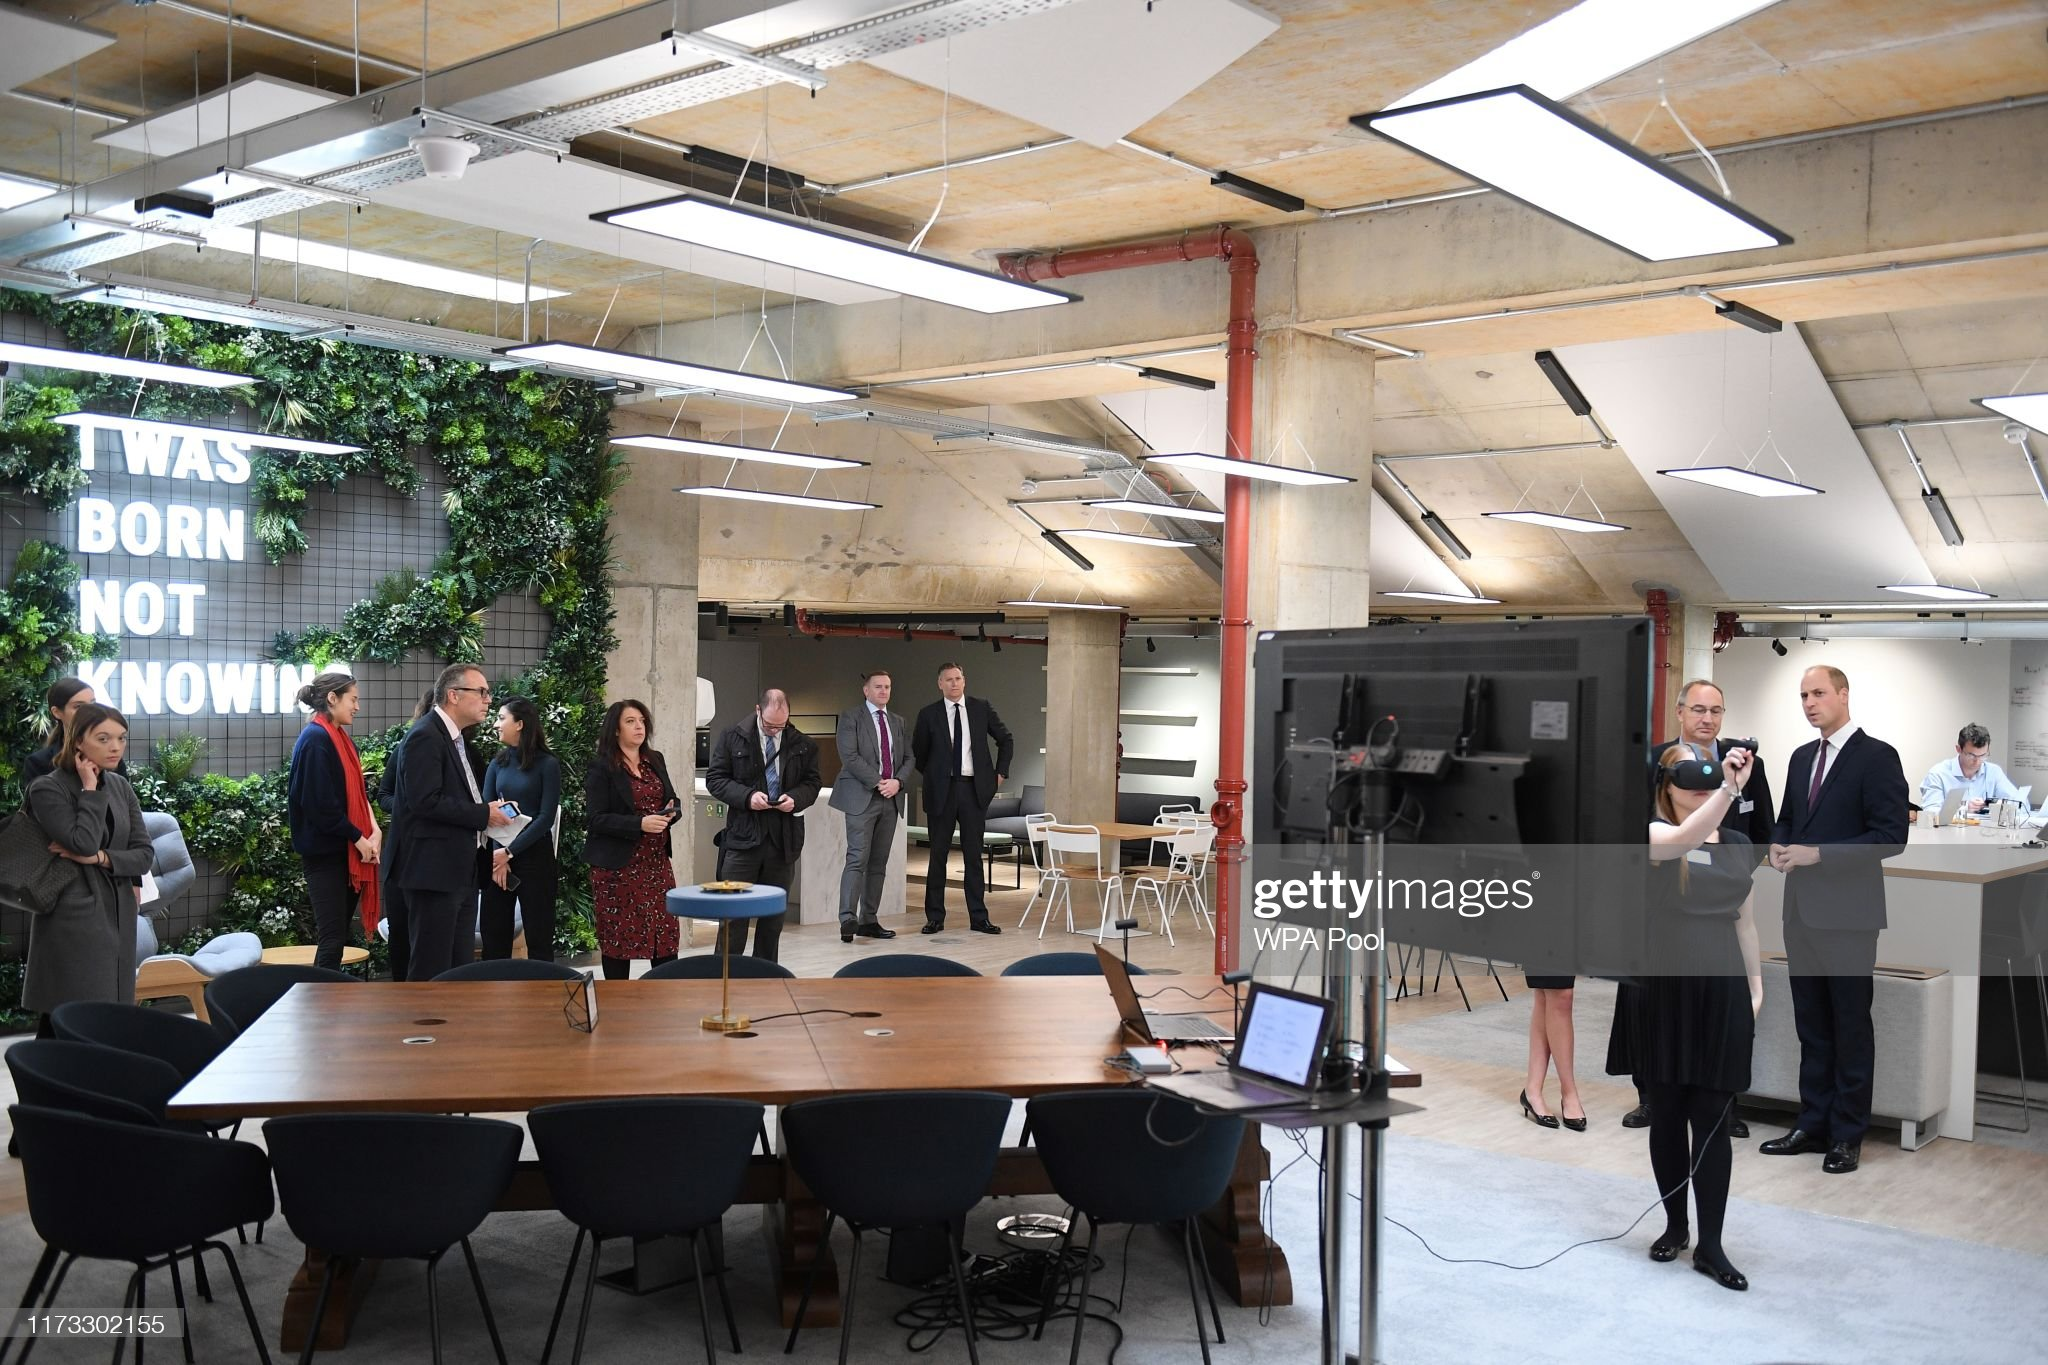 prince-william-duke-of-cambridge-watches-a-virtual-reality-for-a-picture-id1173302155